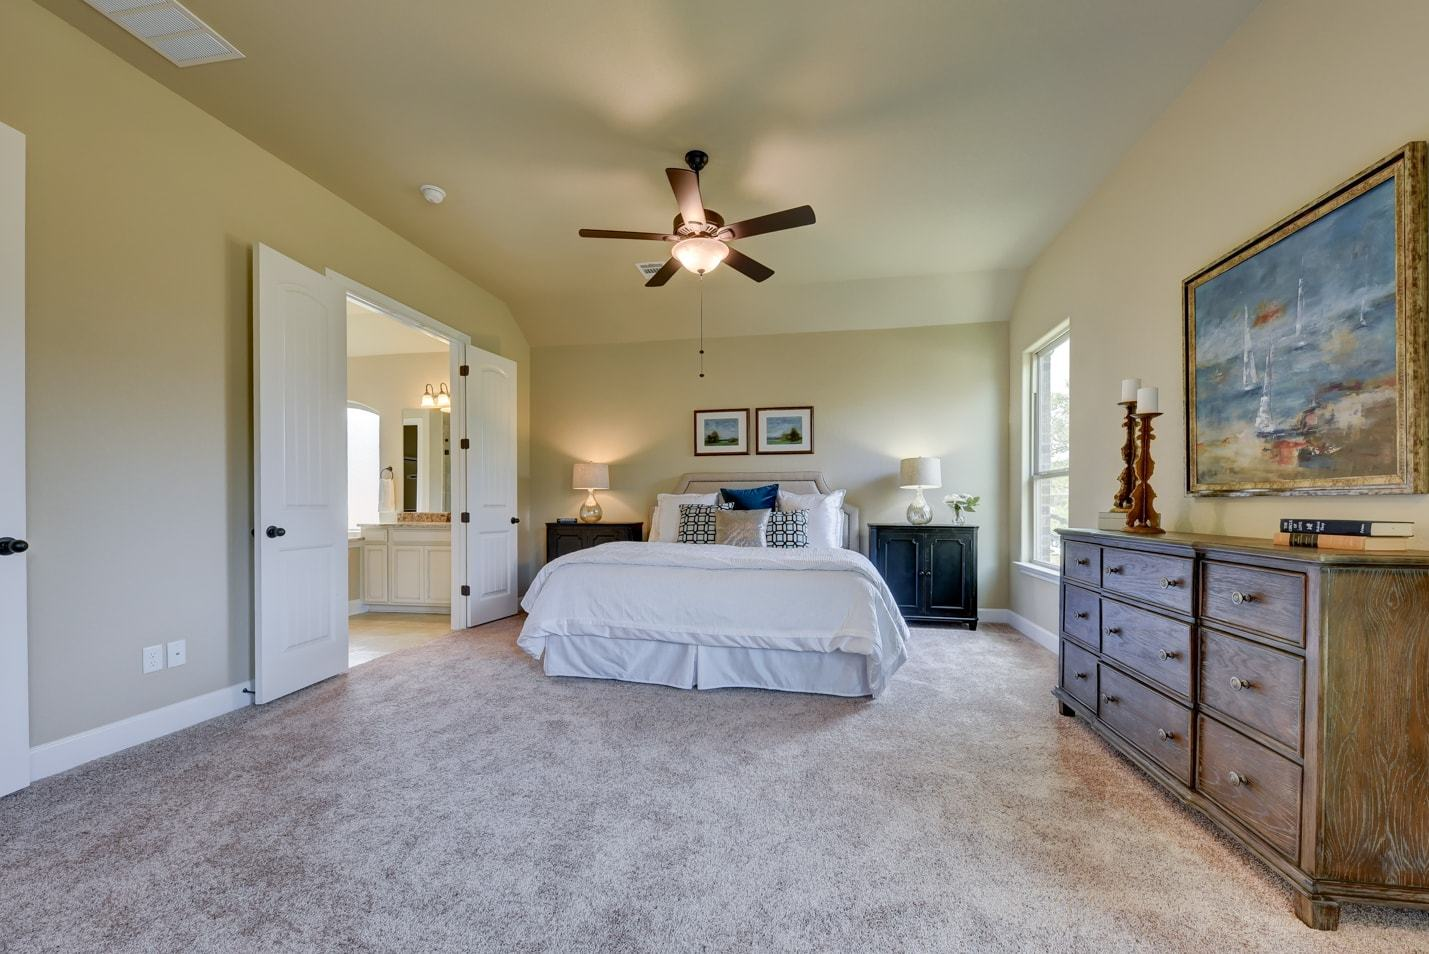 Bedroom-in-Bryan-at-Front Gate at Fair Oaks Ranch-in-Fair Oaks Ranch